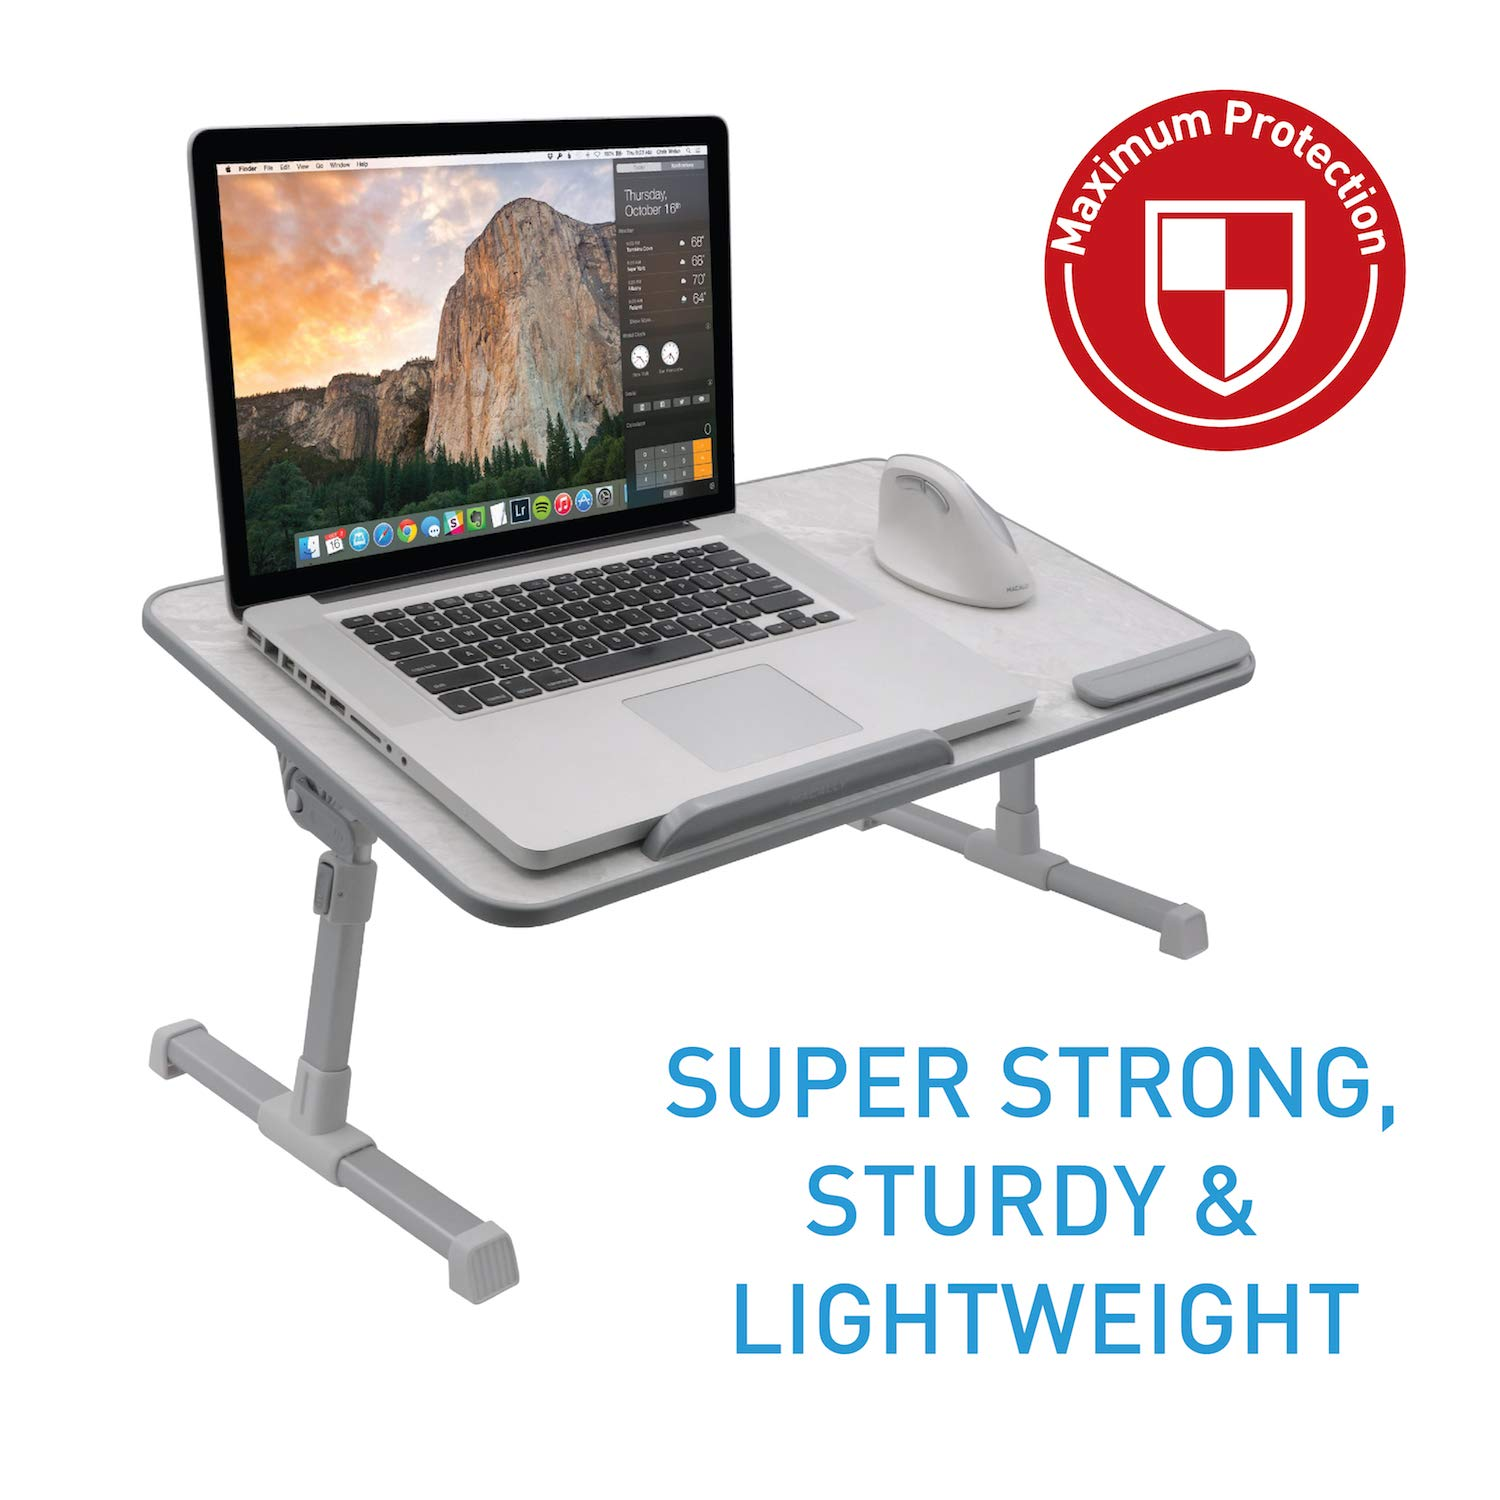 Macally Portable Laptop Table for Bed, [Large Size] Foldable & Height Adjustable Laptop Stand for Table - Sofa, Couch, Recliner - Folding Breakfast Tray Table with Legs, Notebook Lap Holder (Marble) by Macally (Image #5)